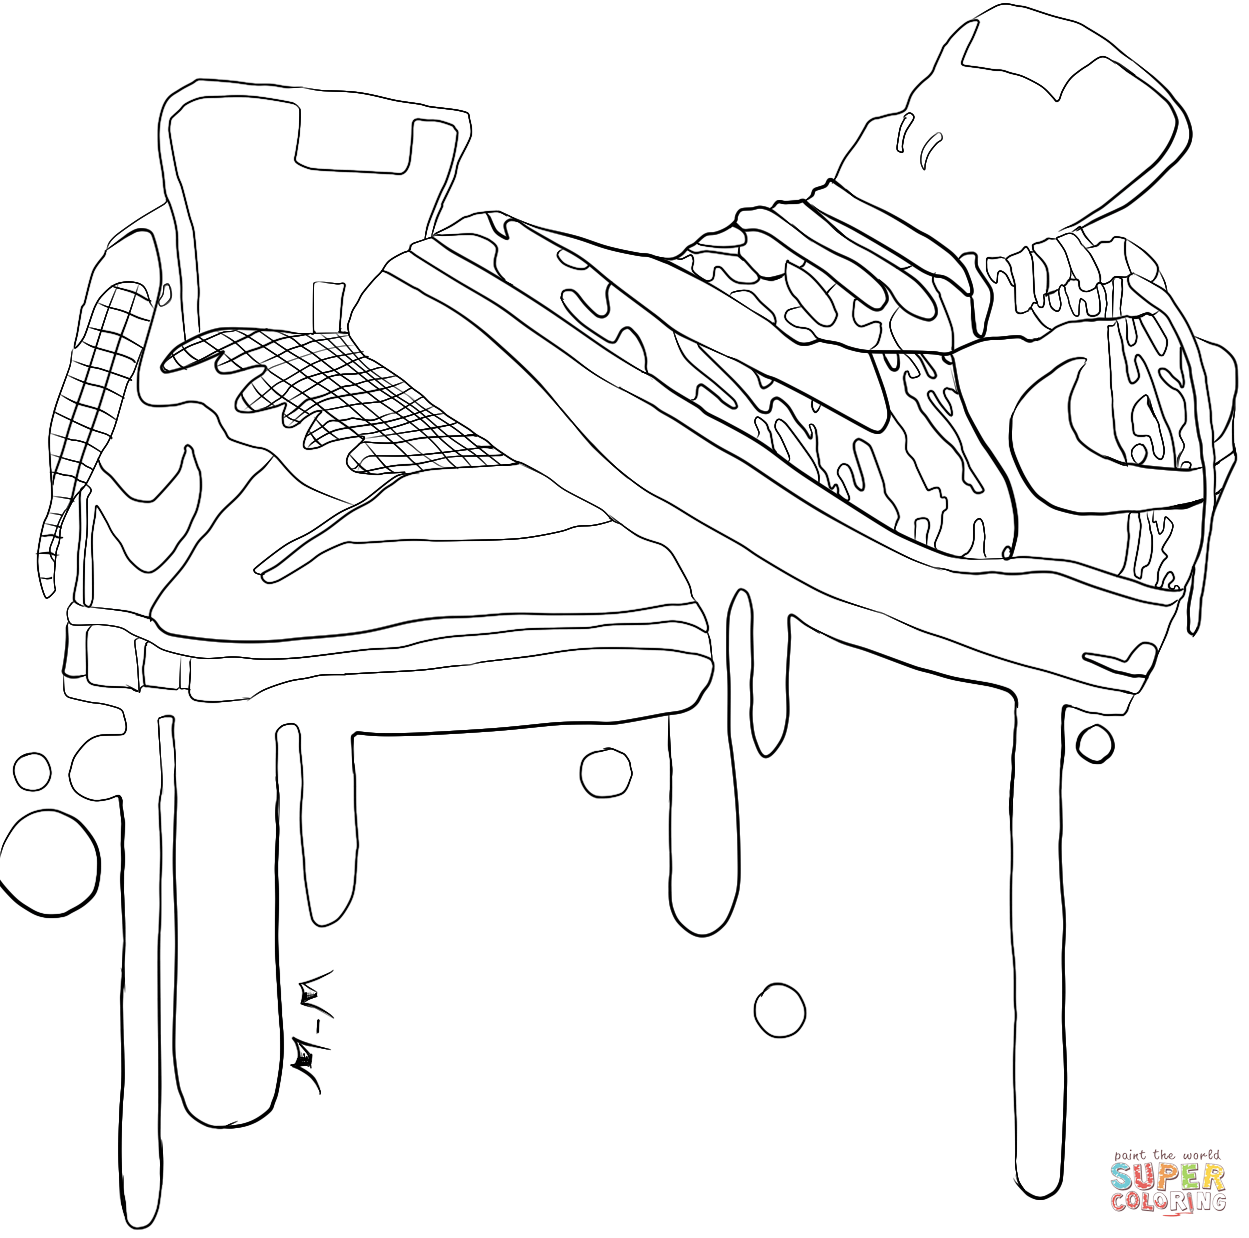 jordans shoes coloring pages - photo#26